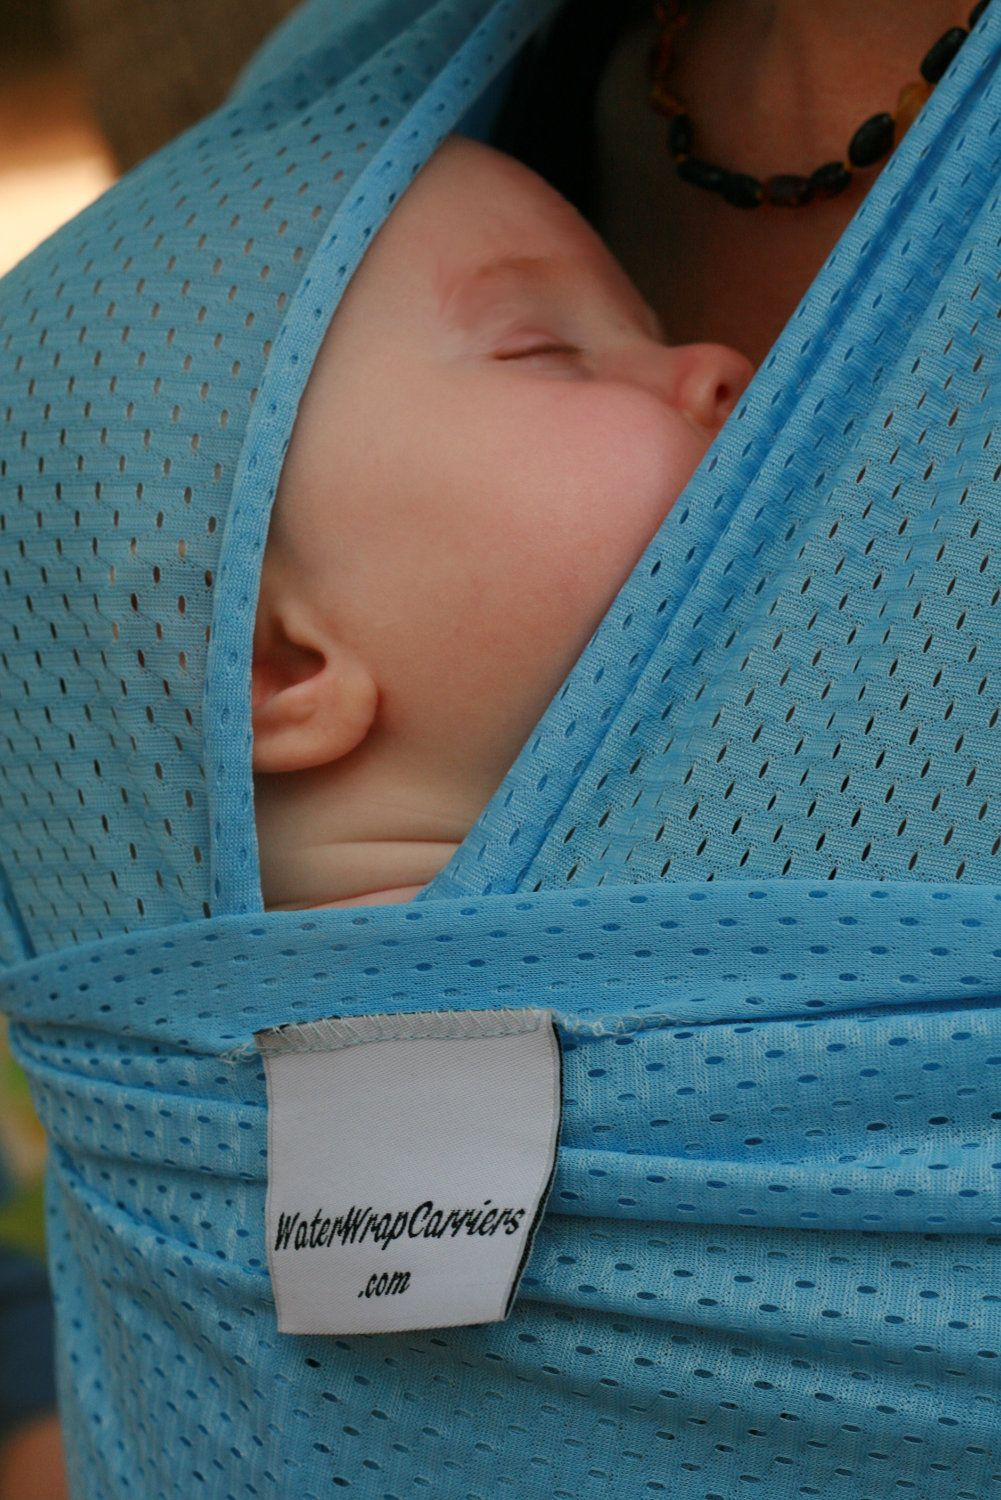 usa made beachfront baby wrap carrier safe water babywearing at usa made beachfront baby wrap carrier safe water babywearing at the beach pool water park or in the shower sky blue mesh